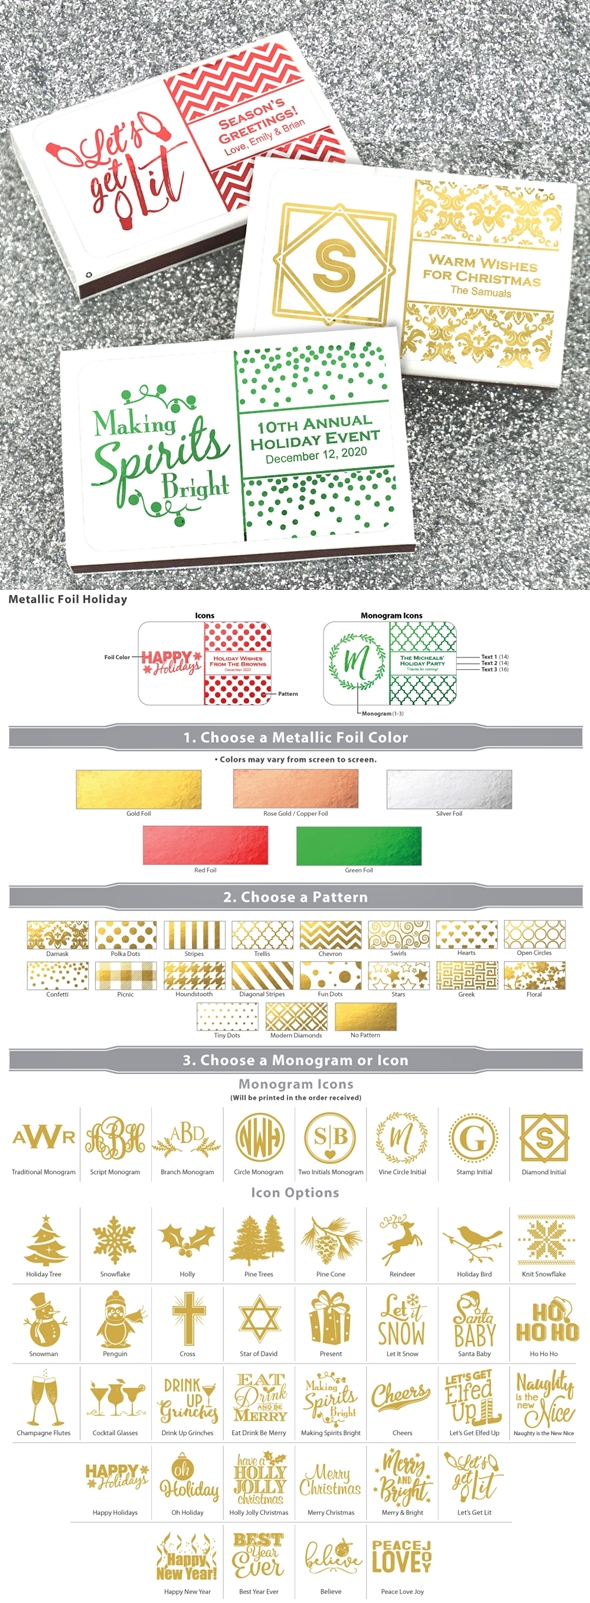 Metallic Foil Holiday Design Personalized White Matchboxes (Set of 50)